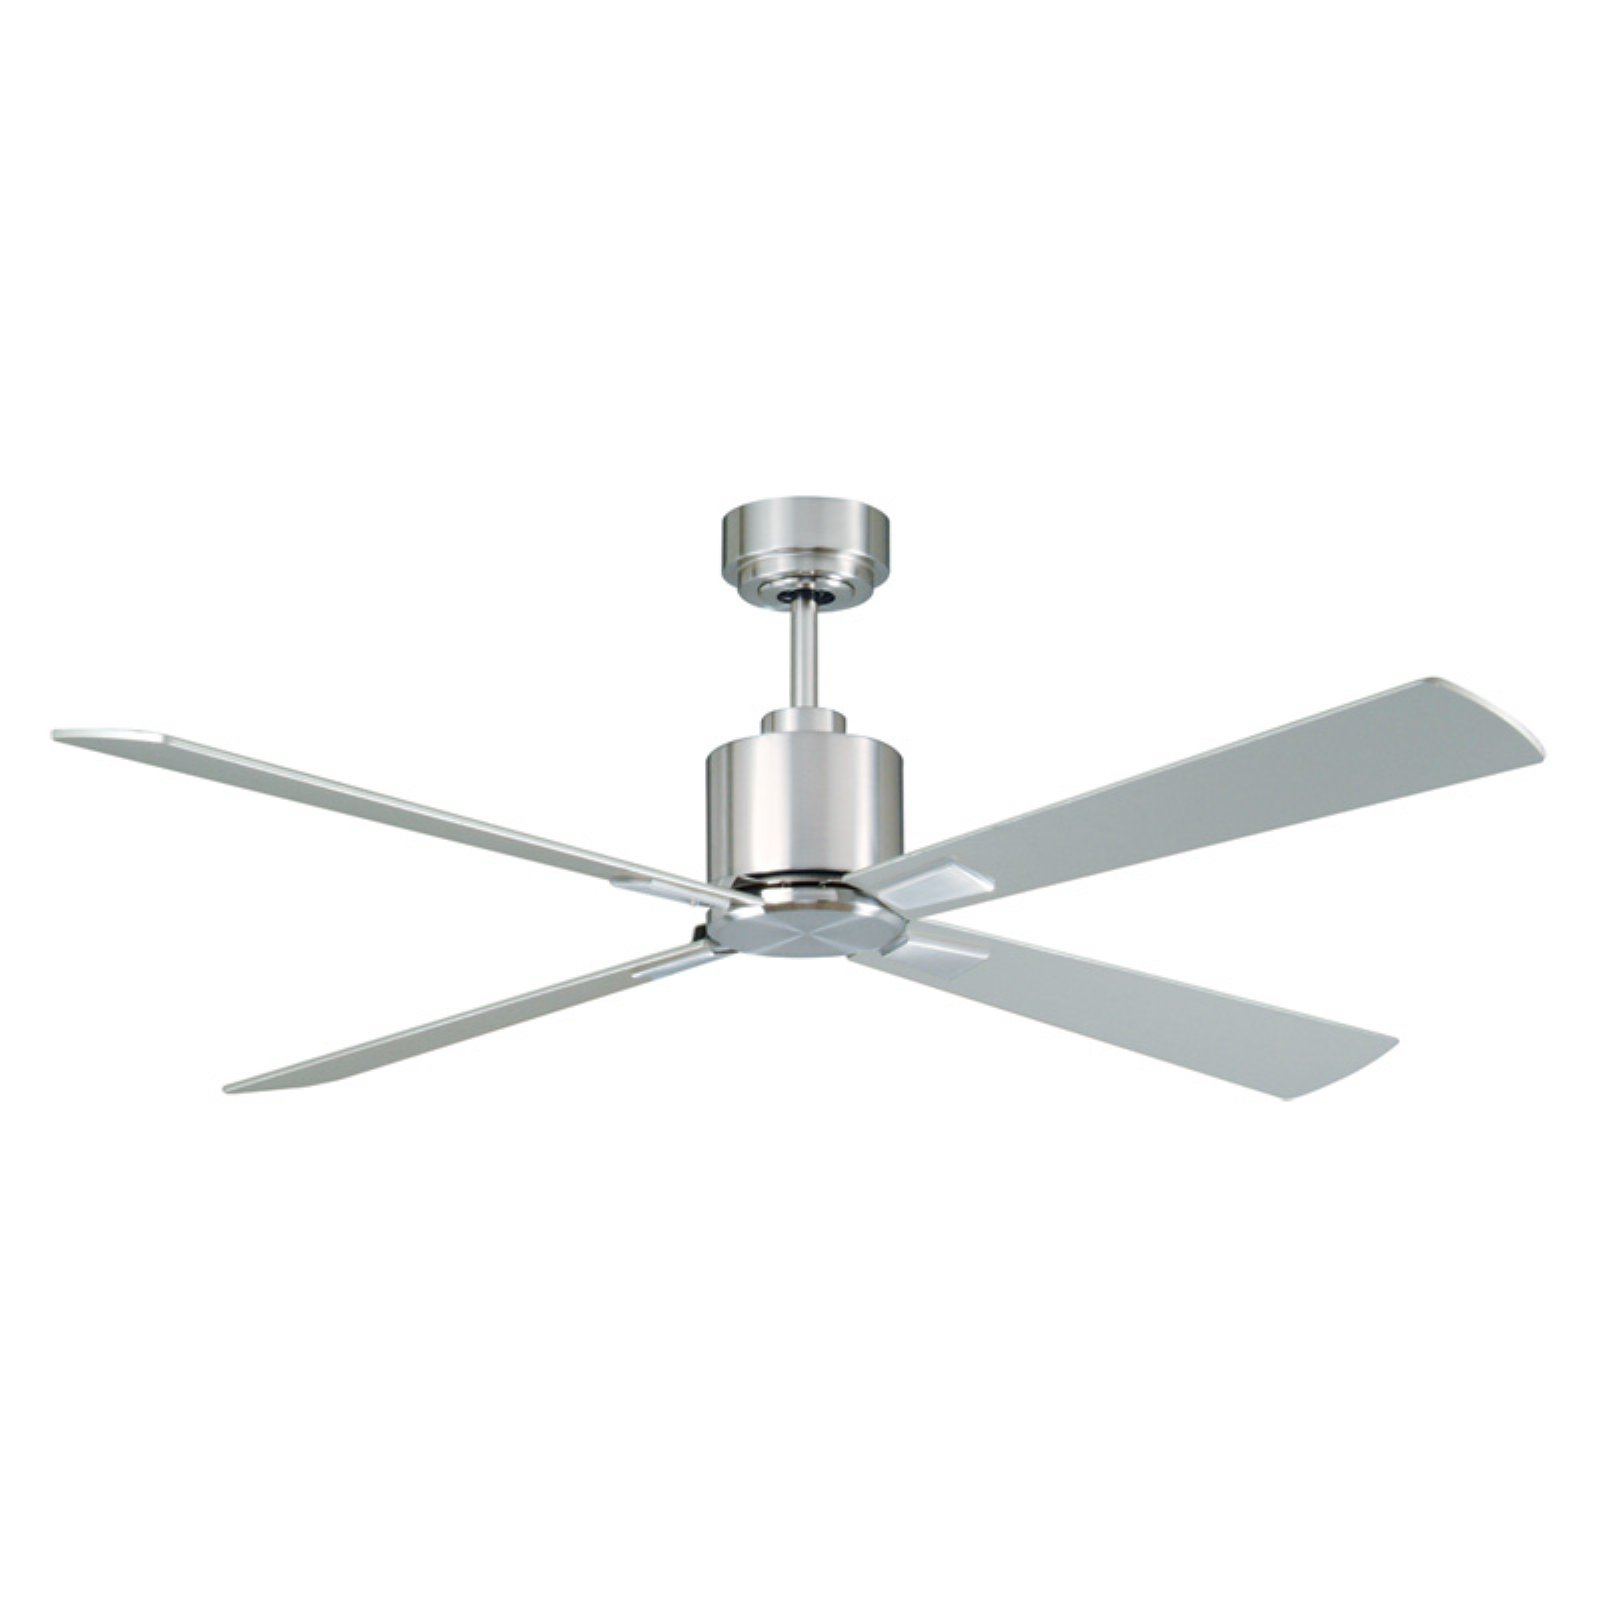 Lucci Air Airfusion Climate 52 In Indoor Ceiling Fan With